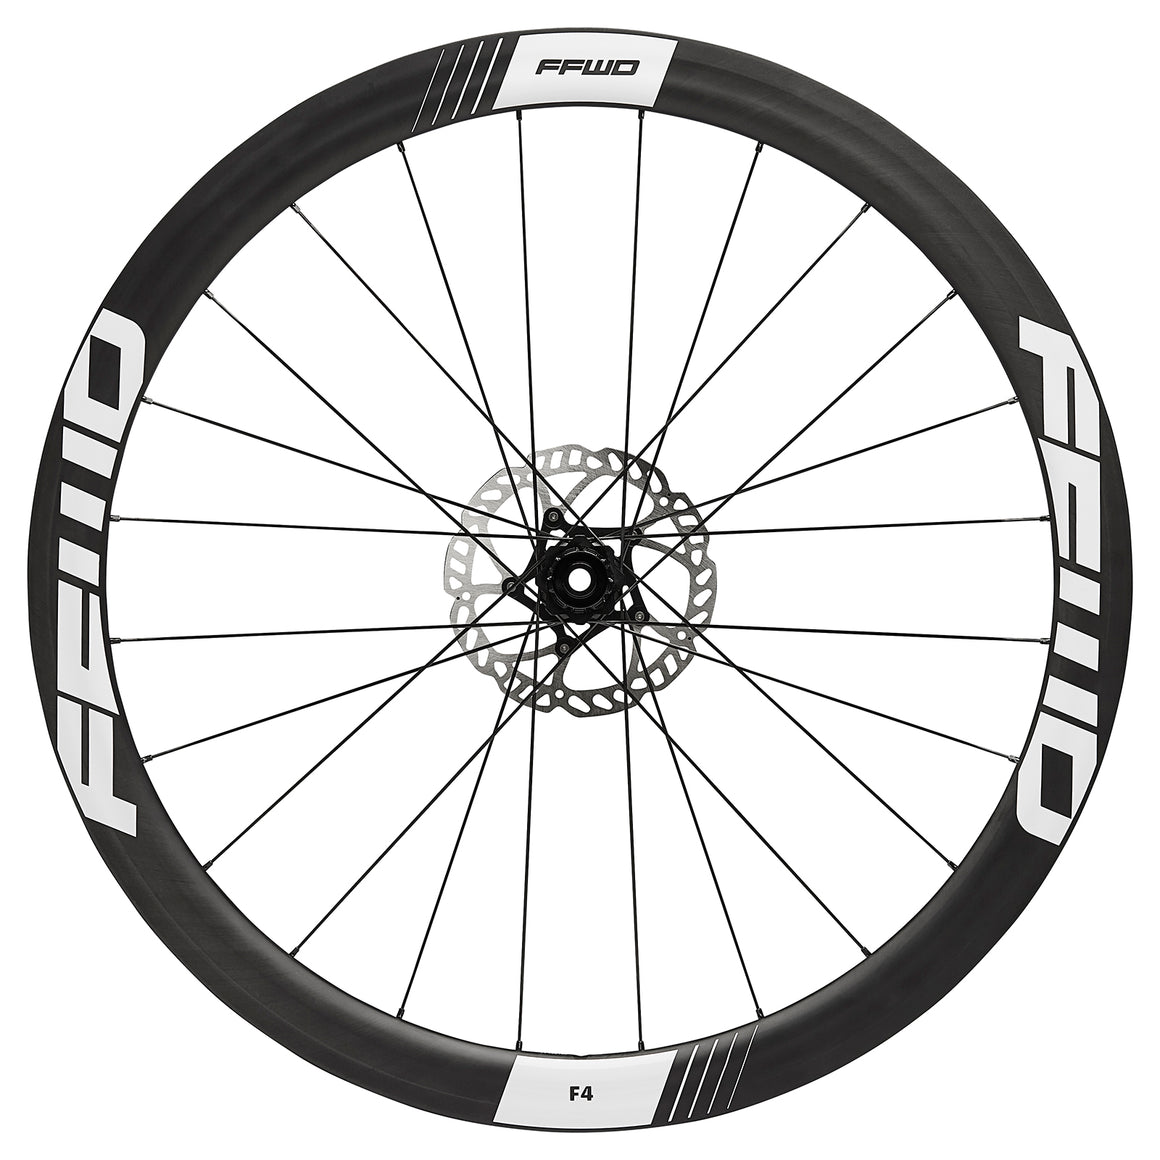 FFWD - F4R Full Carbon Tubular Wheel Set